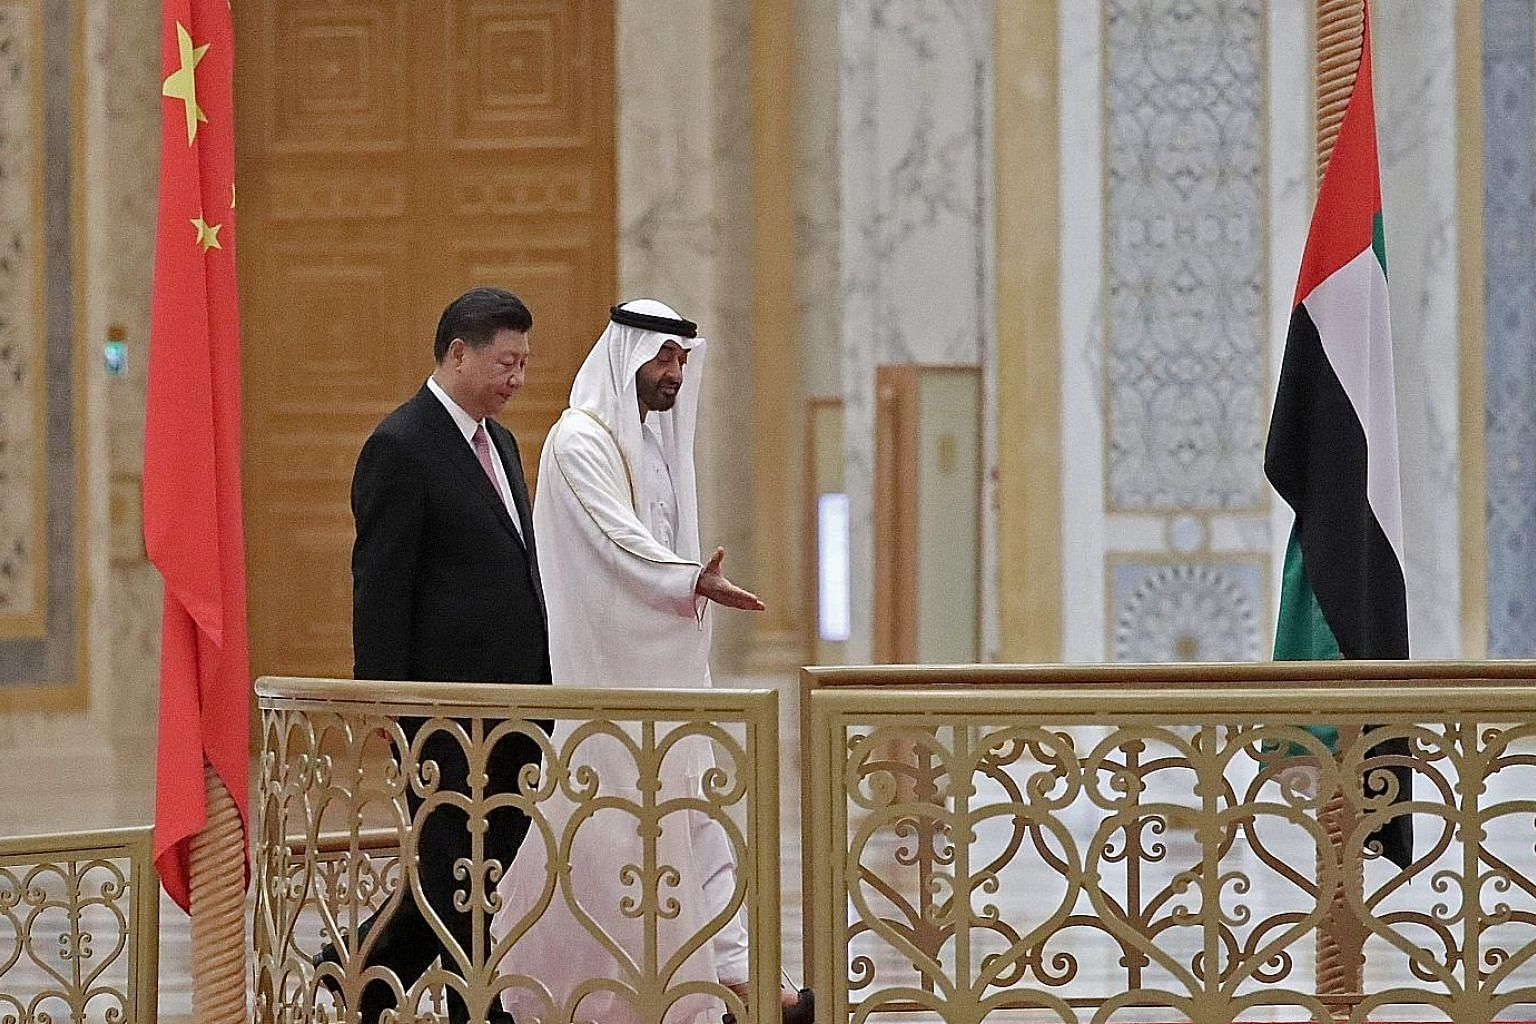 Chinese President Xi Jinping and Abu Dhabi's Crown Prince Mohamed bin Zayed Al-Nahyan at the presidential palace in the UAE capital last month. China is the UAE's biggest trading partner, with trade amounting to more than US$50 billion last year.